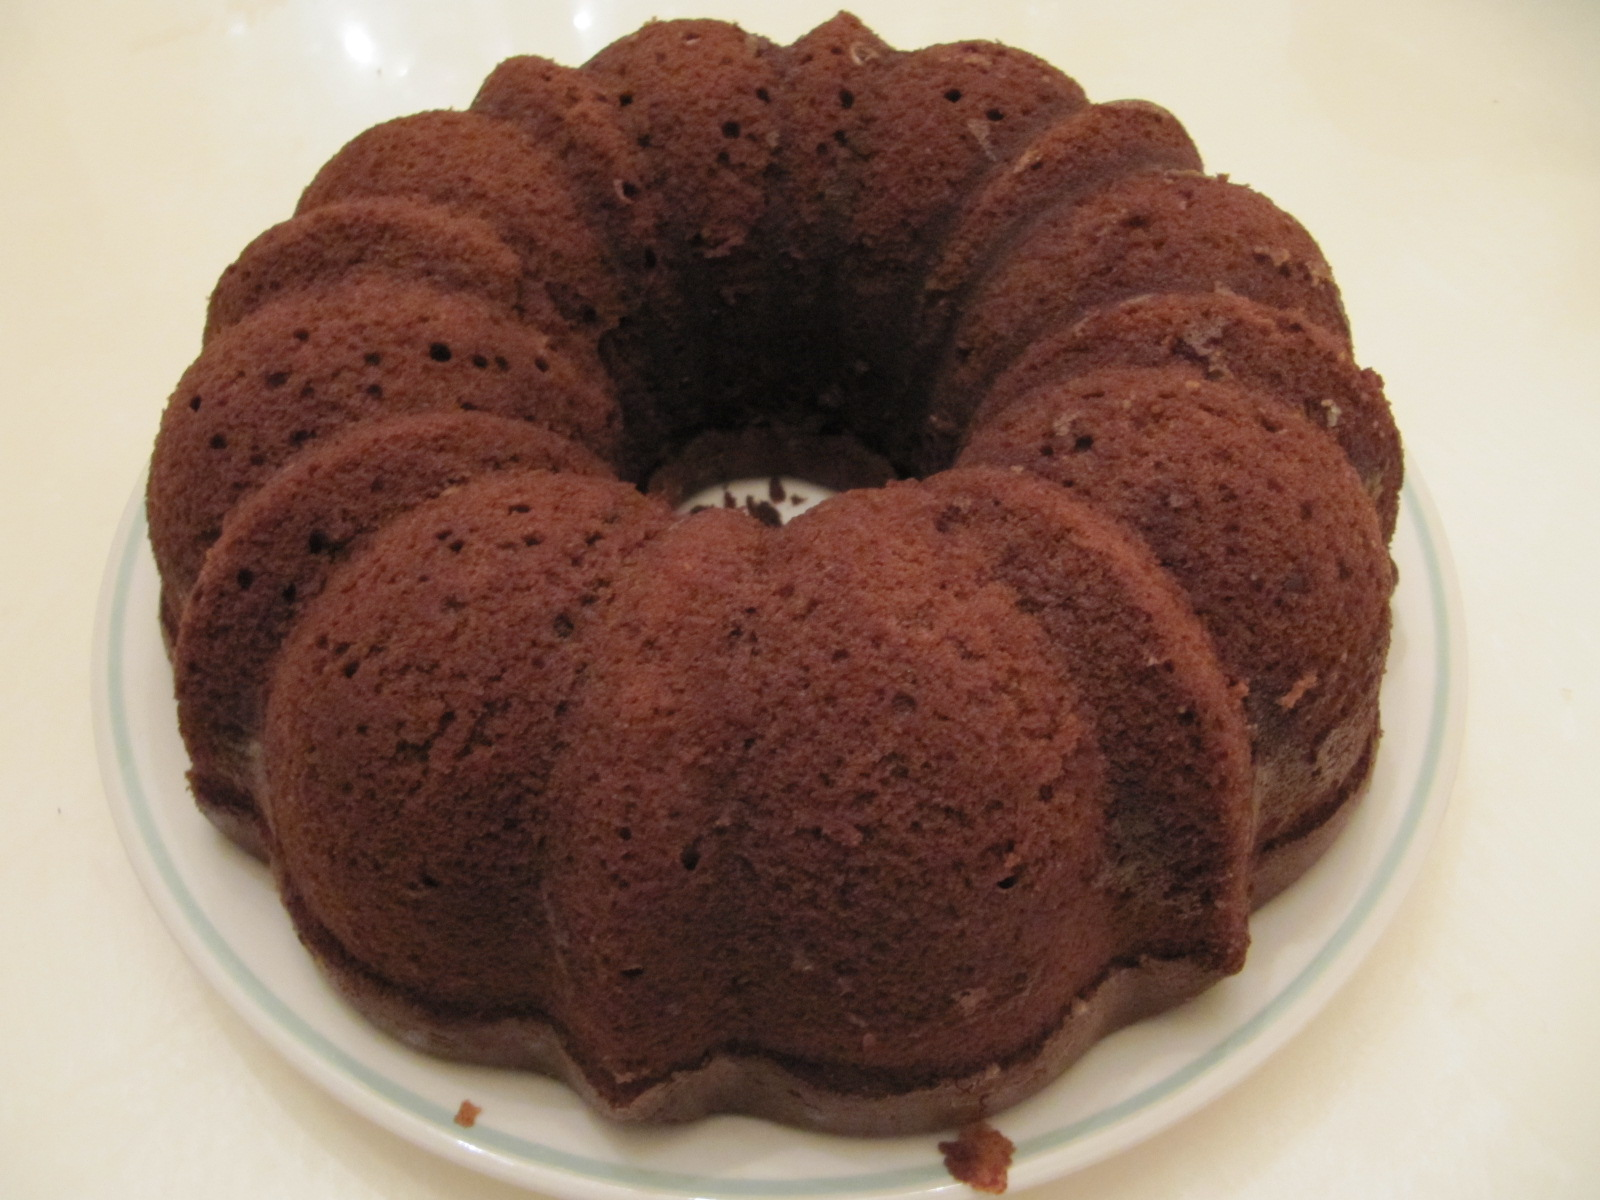 Recipes Course Desserts Cakes Chocolate Bundt Cake